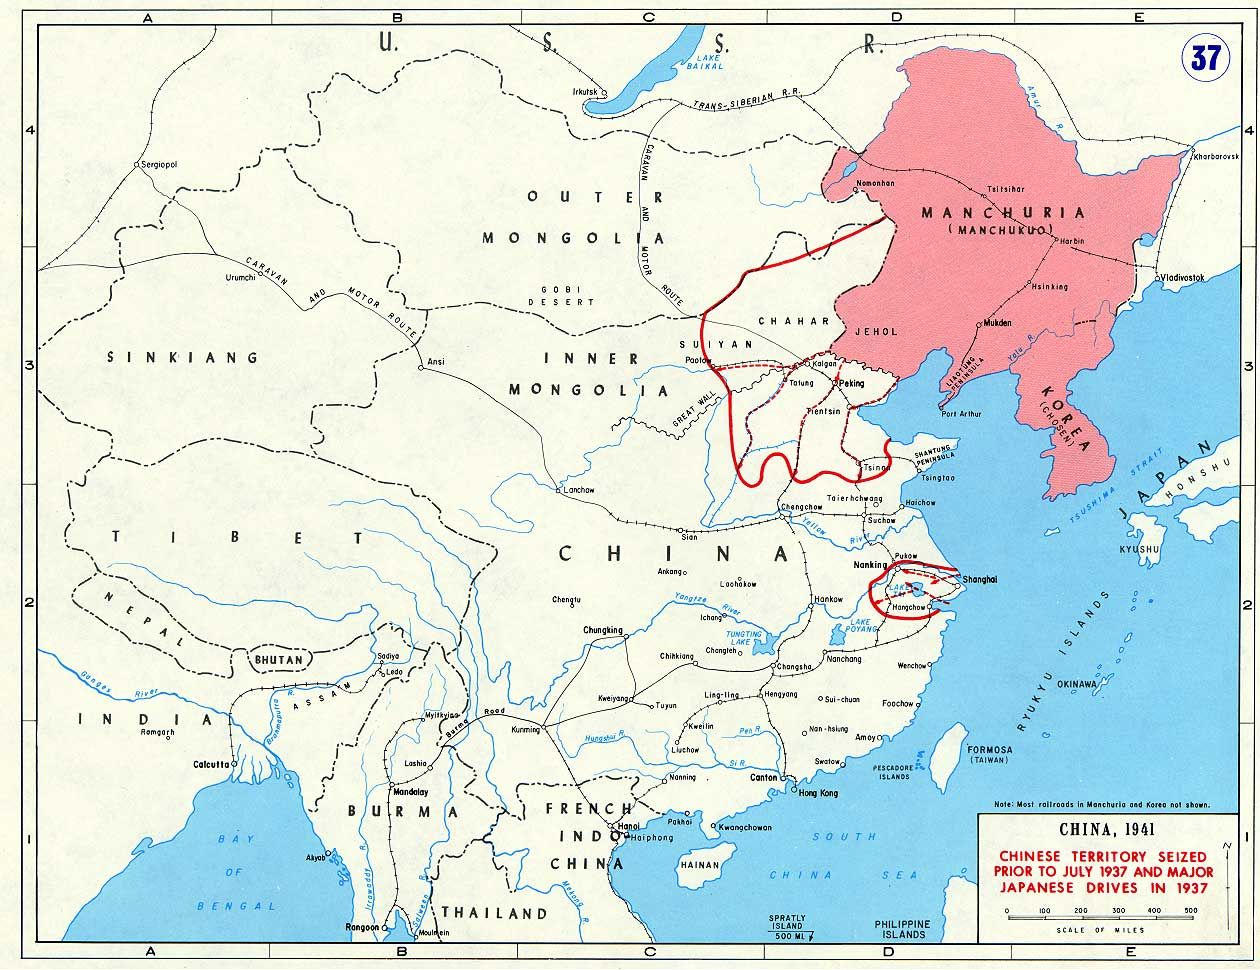 Chinese territory seized prior to july 1937 and major japanese map marking major japanese campaigns in china in 1937 find this pin and more on world war ii gumiabroncs Image collections